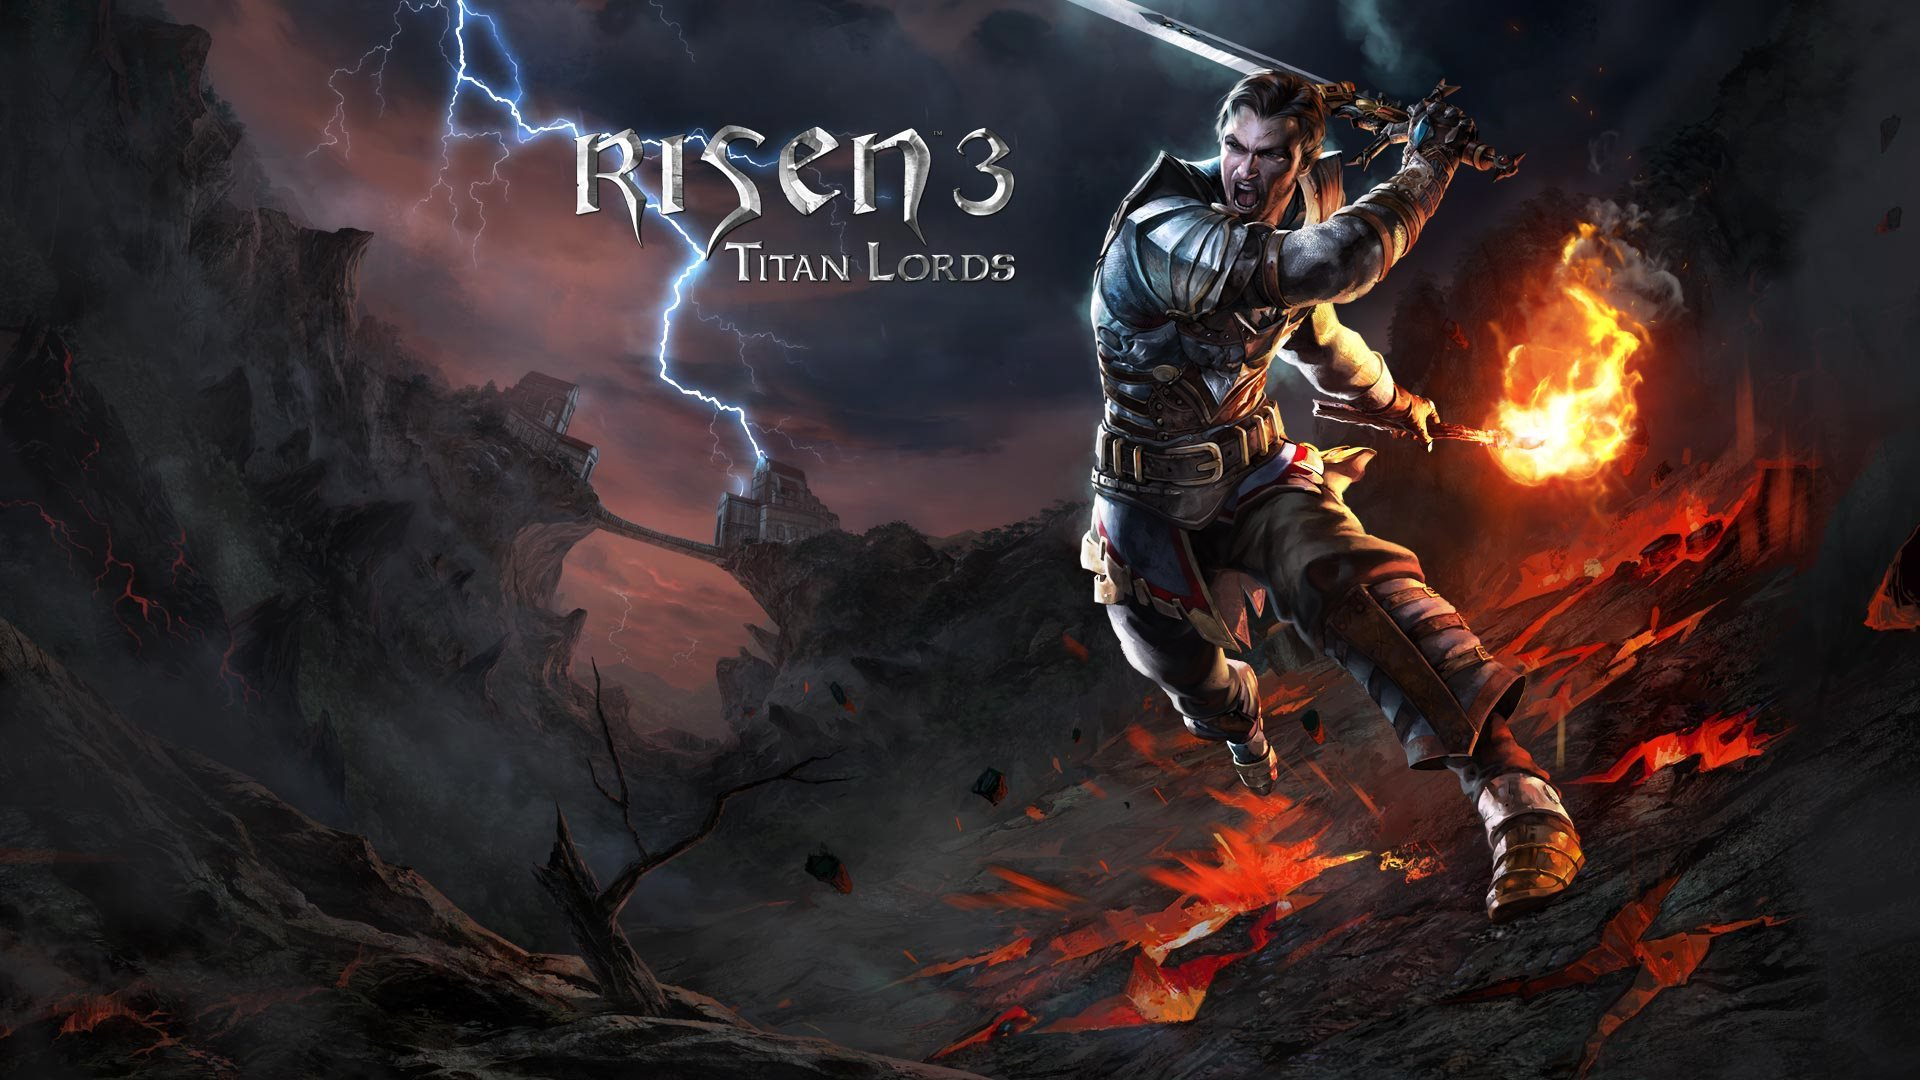 Risen 3 Titan Lords - Expanded Edition